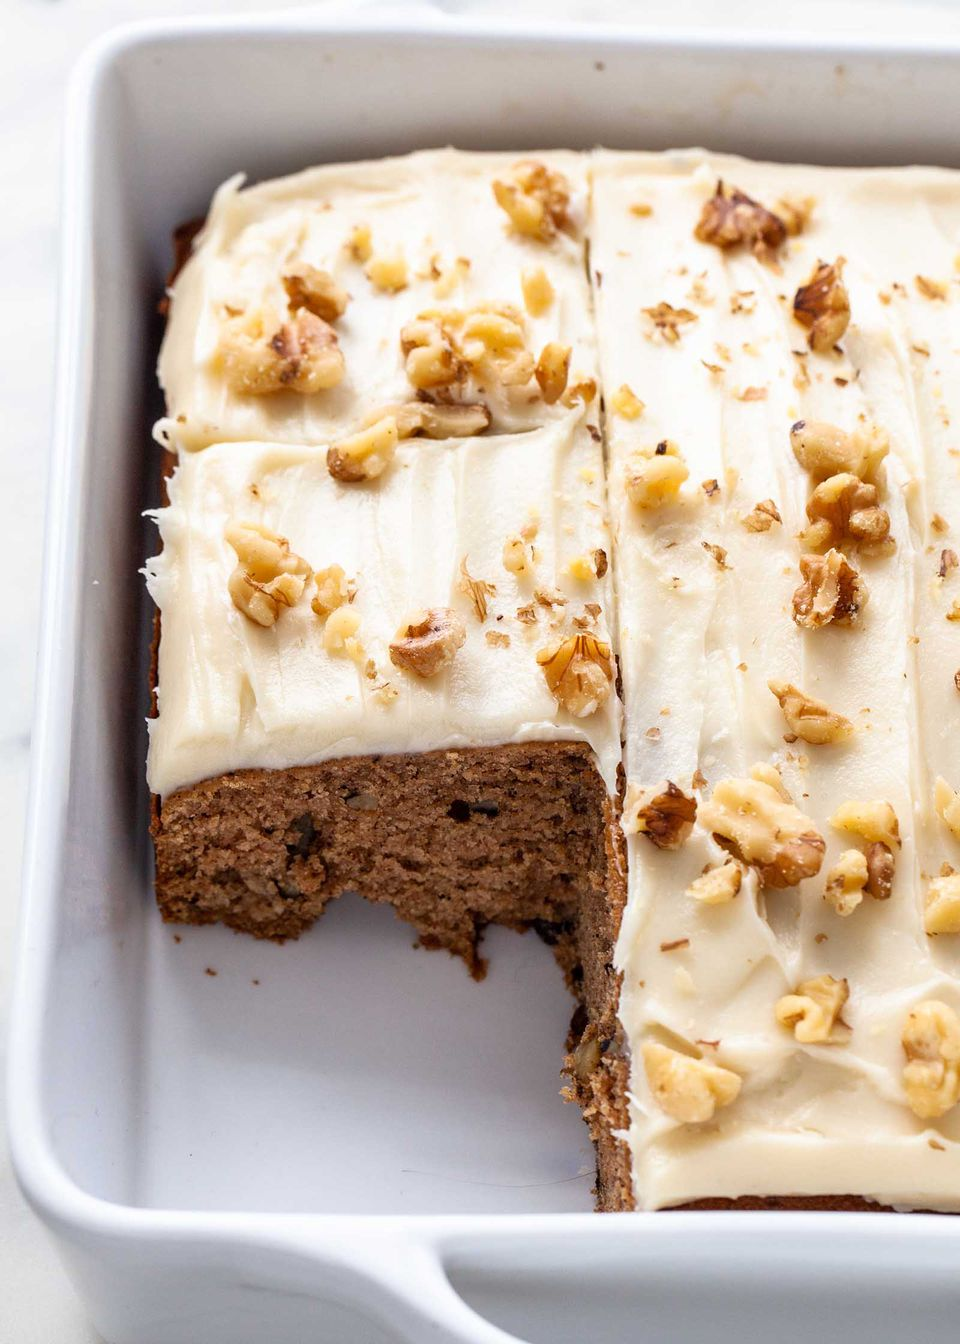 Applesauce spice cake frosted and topped with nuts.